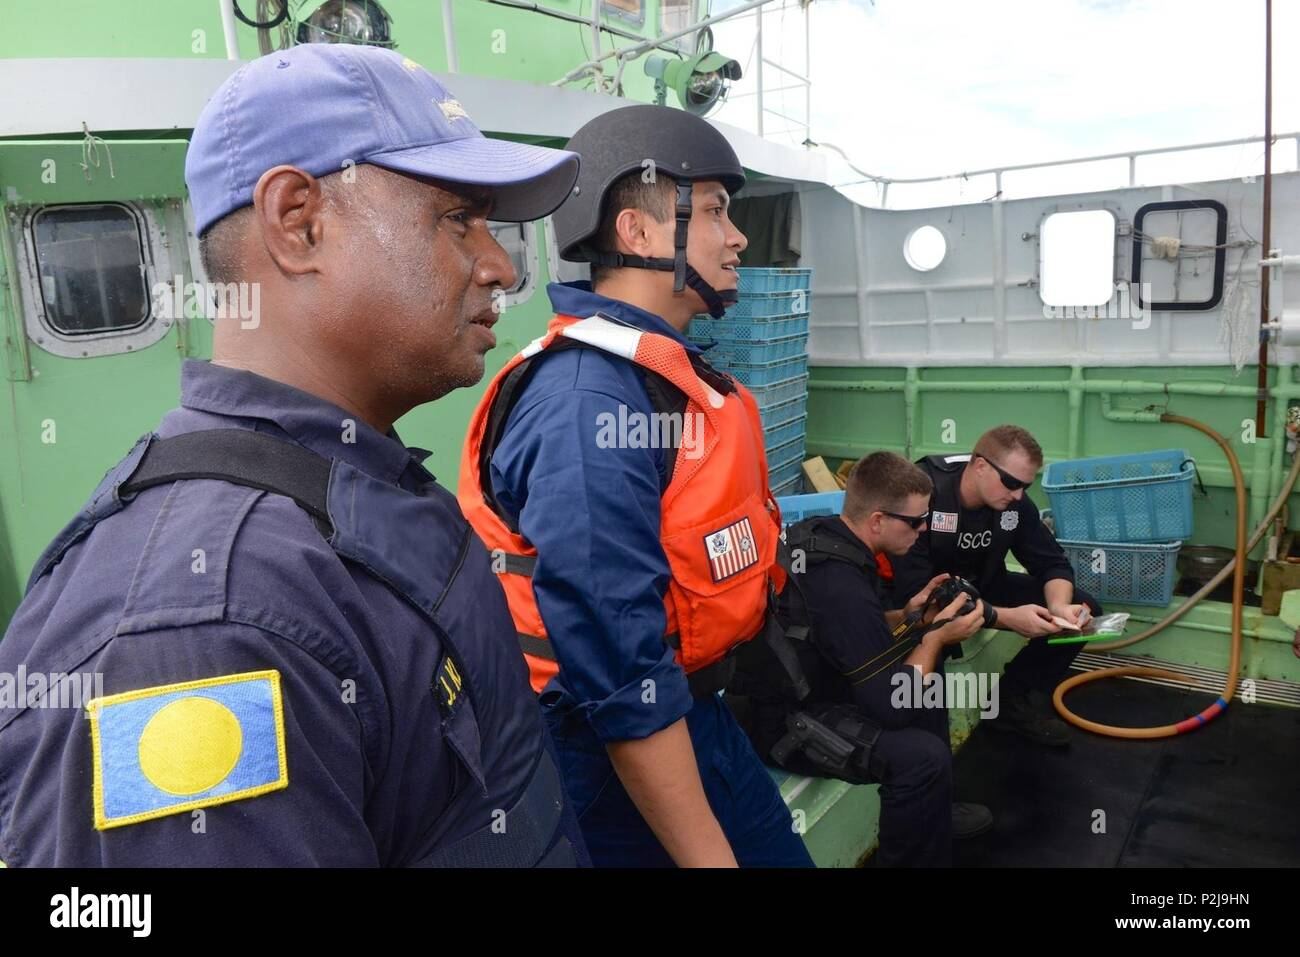 U.s. coast Guard Seaman Neal Vincent Edera, a food service specialist and Tagalog speaker, and Jim Kloulechad, a Palau National Police officer, converse with the crew of the vessel as other members of the boarding team review the fishermen's passports and identification aboard the fishing vessel Ayamaru No. 58 while underway in the Palau exclusive economic zone Sept. 3, 2016. The Coast Guard, working with the Palau National Police conducted fisheries enforcement boardings in the Palau EEZ under a bilateral agreement. (U.S. Coast Guard photo by Chief Petty Officer Sara Mooers) - Stock Image